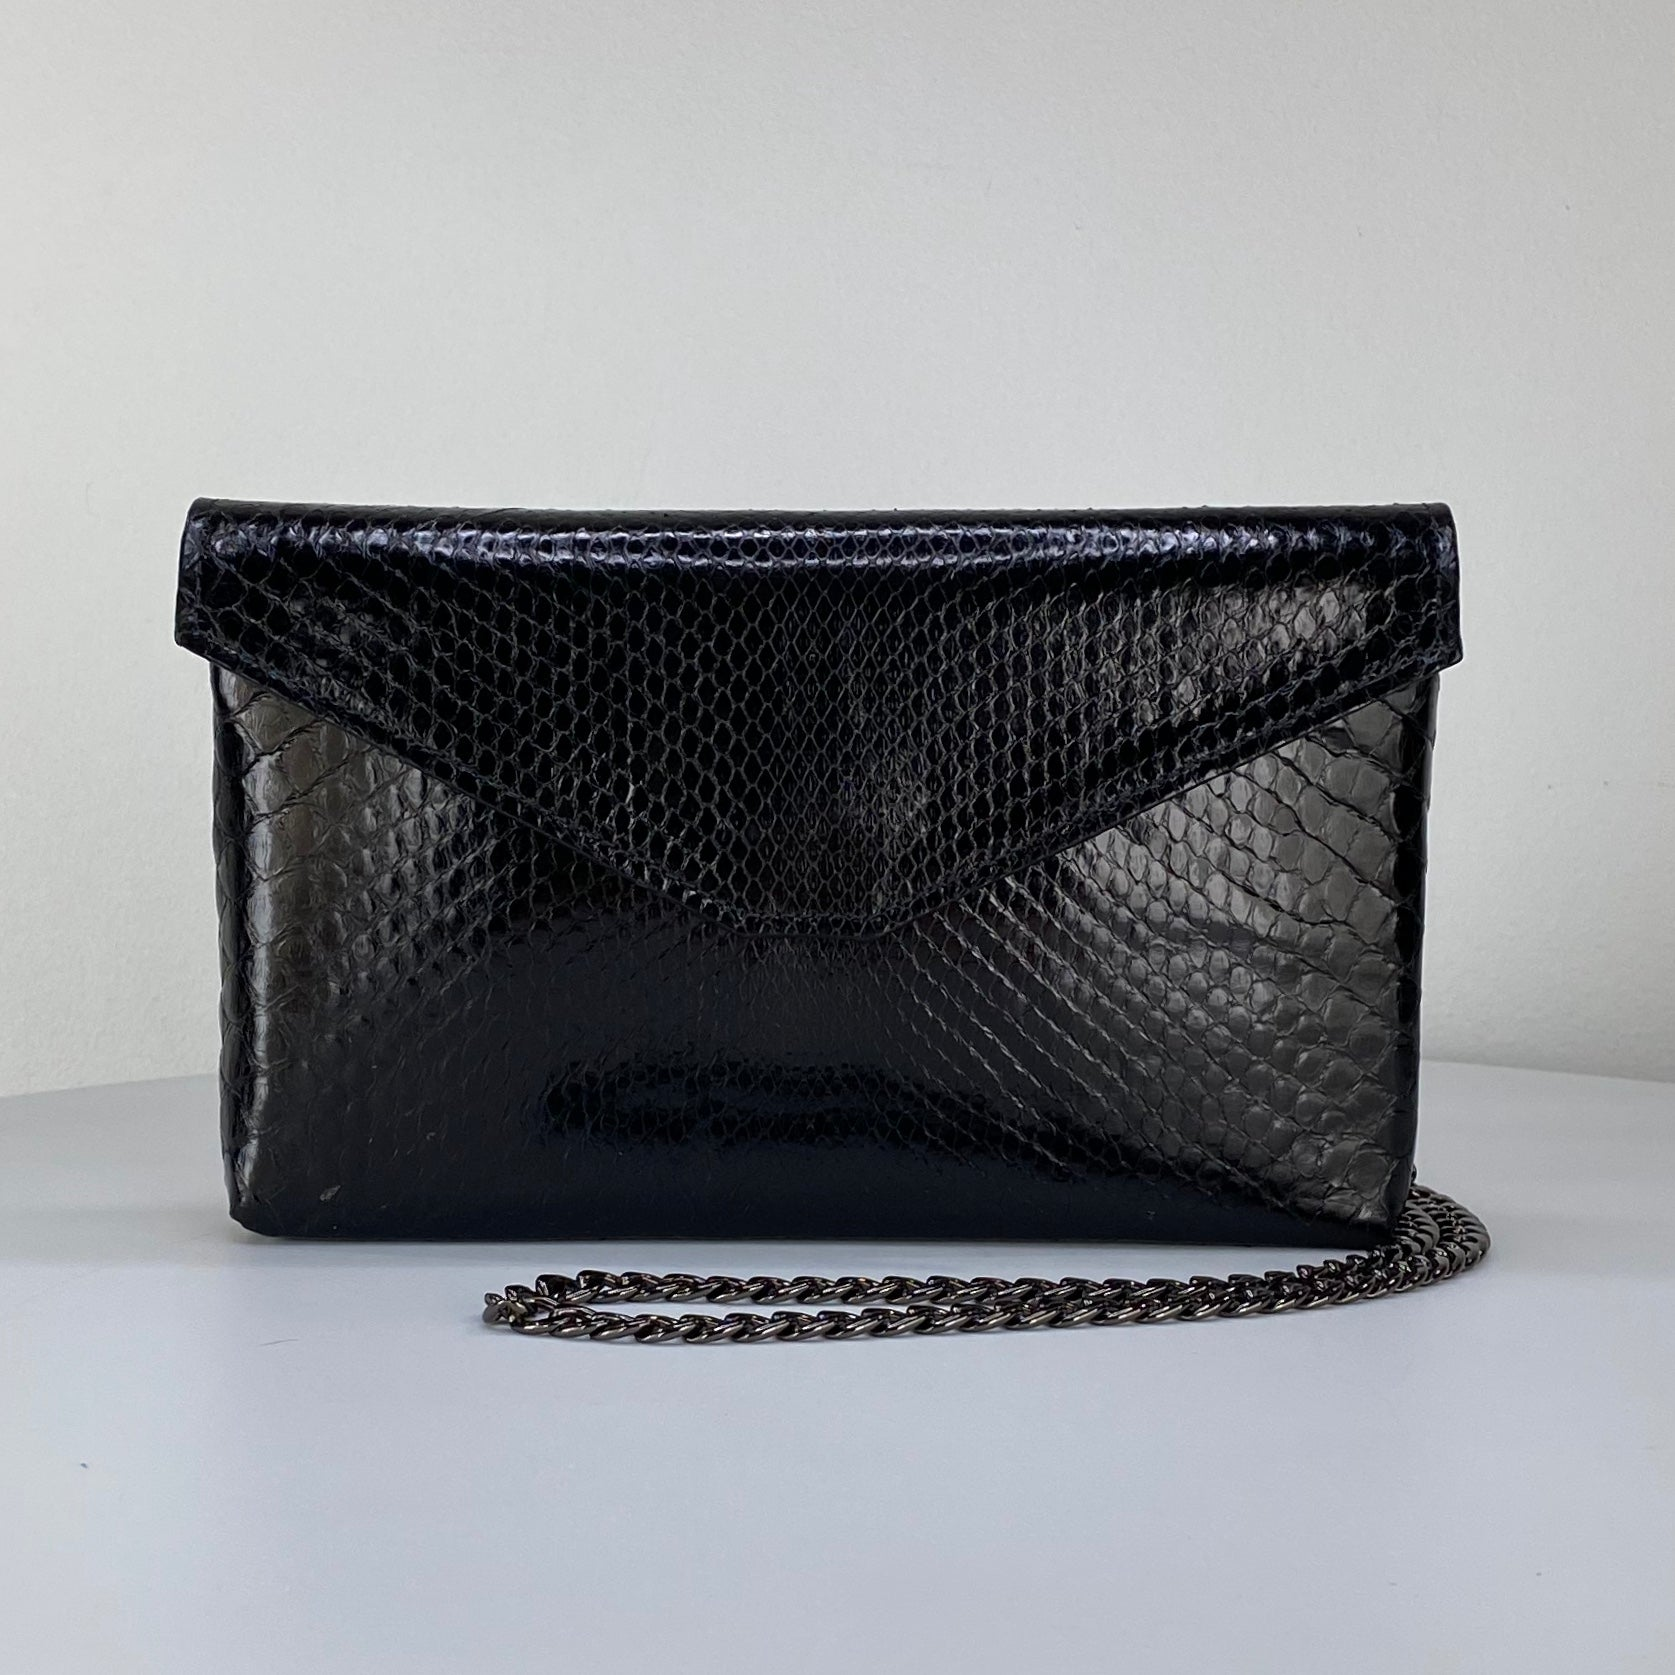 CLASSIC ENVELOPE BAG, BLACK EXOTIC